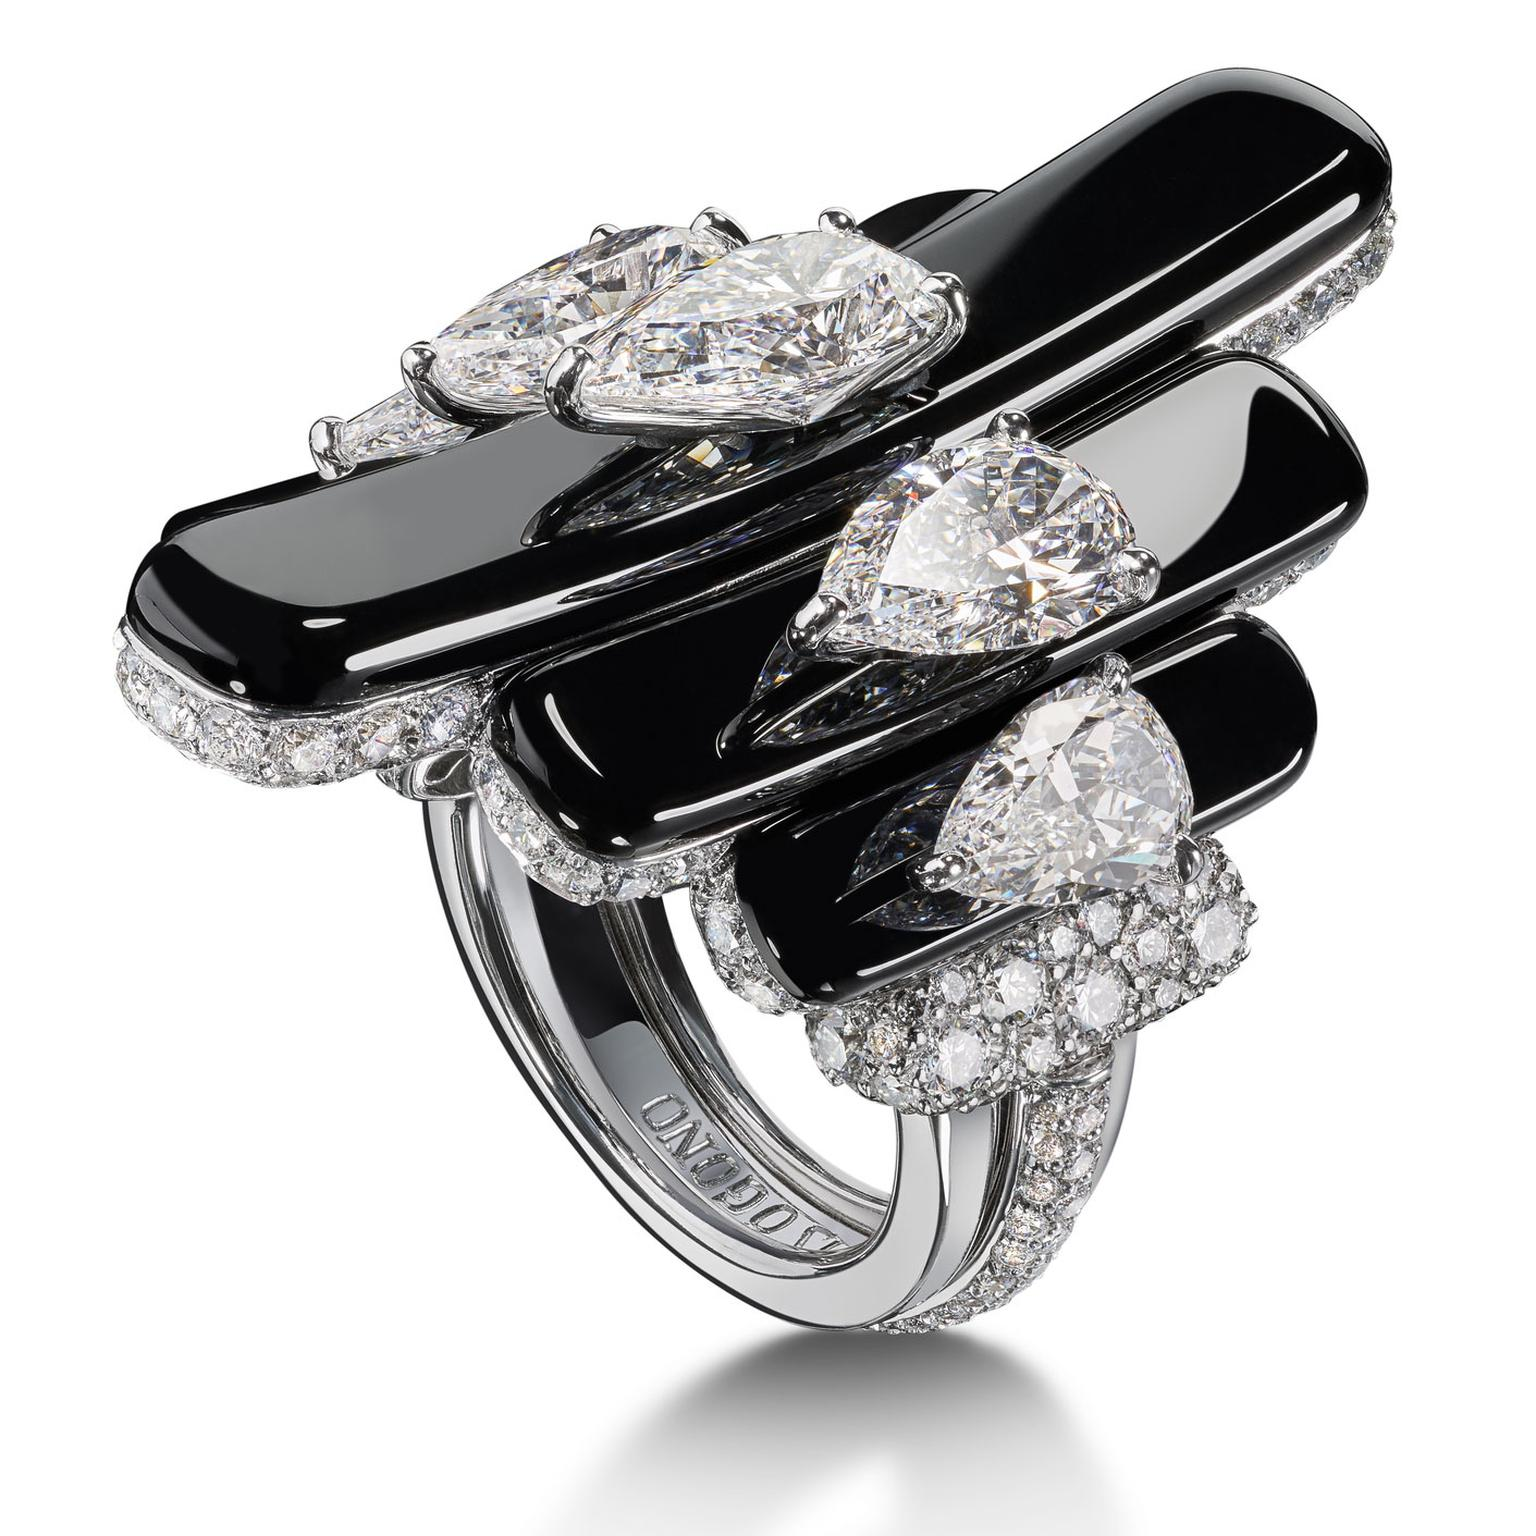 de GRISOGONO Love On The Rocks high jewellery white gold, white diamond and onyx ring from the side